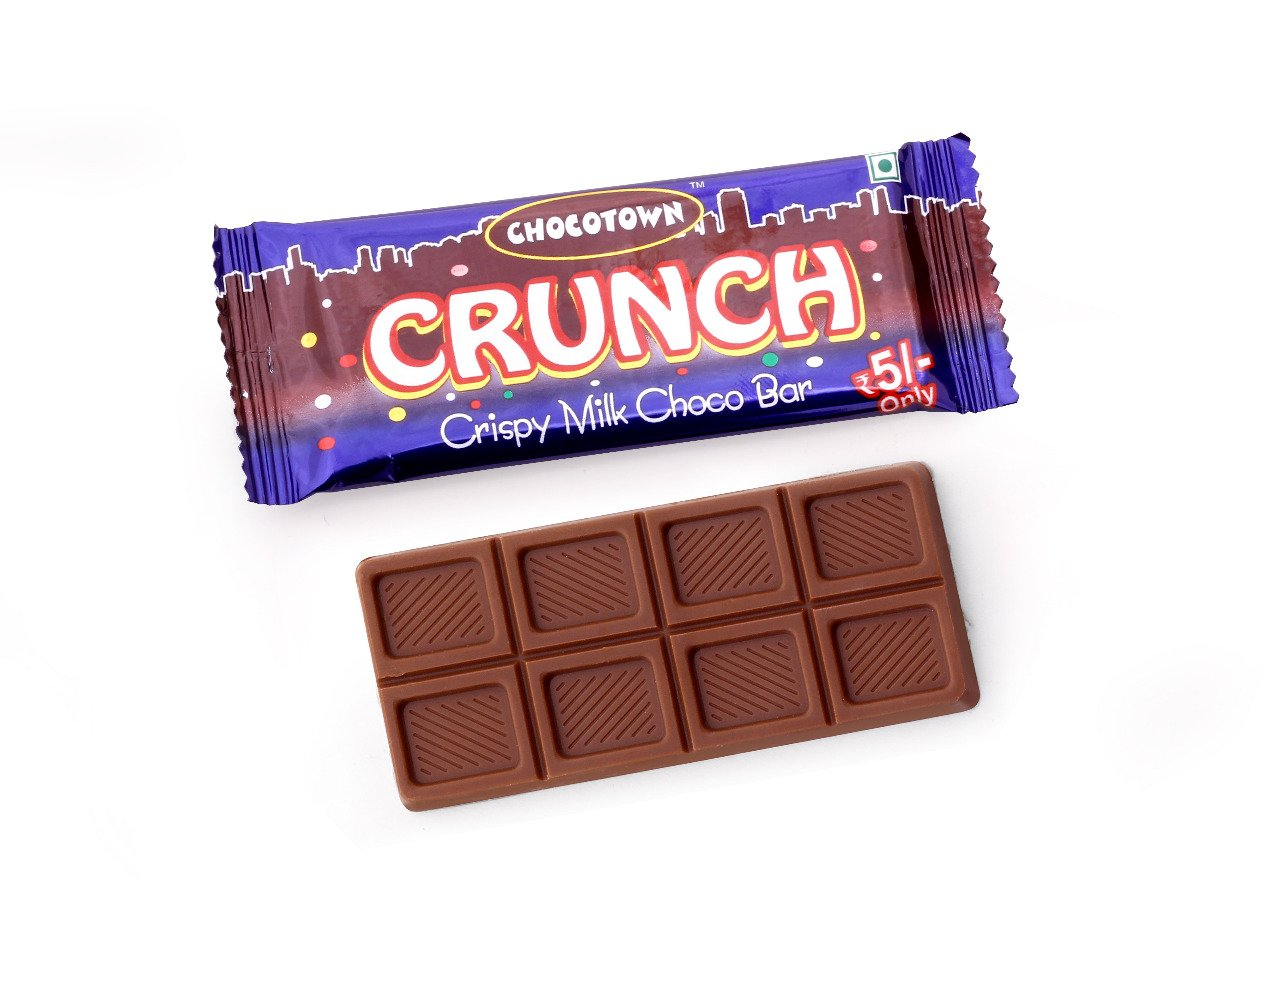 Chocotown Crunch Crispy Milk Chocobar, 15gm